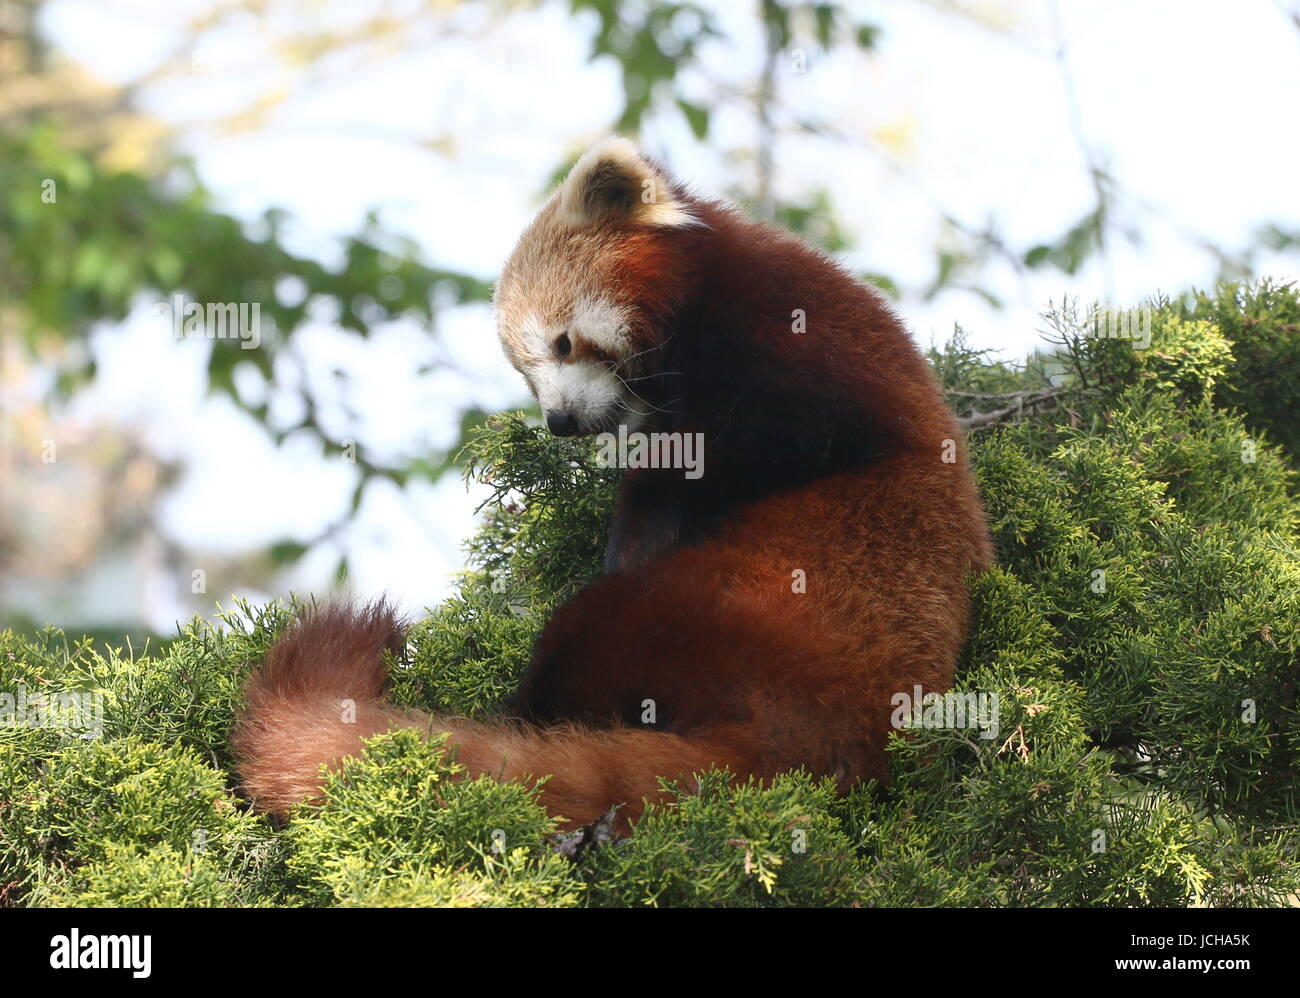 Drowsy Asian Red Panda (Ailurus fulgens) in a tree, ready to take a nap. - Stock Image